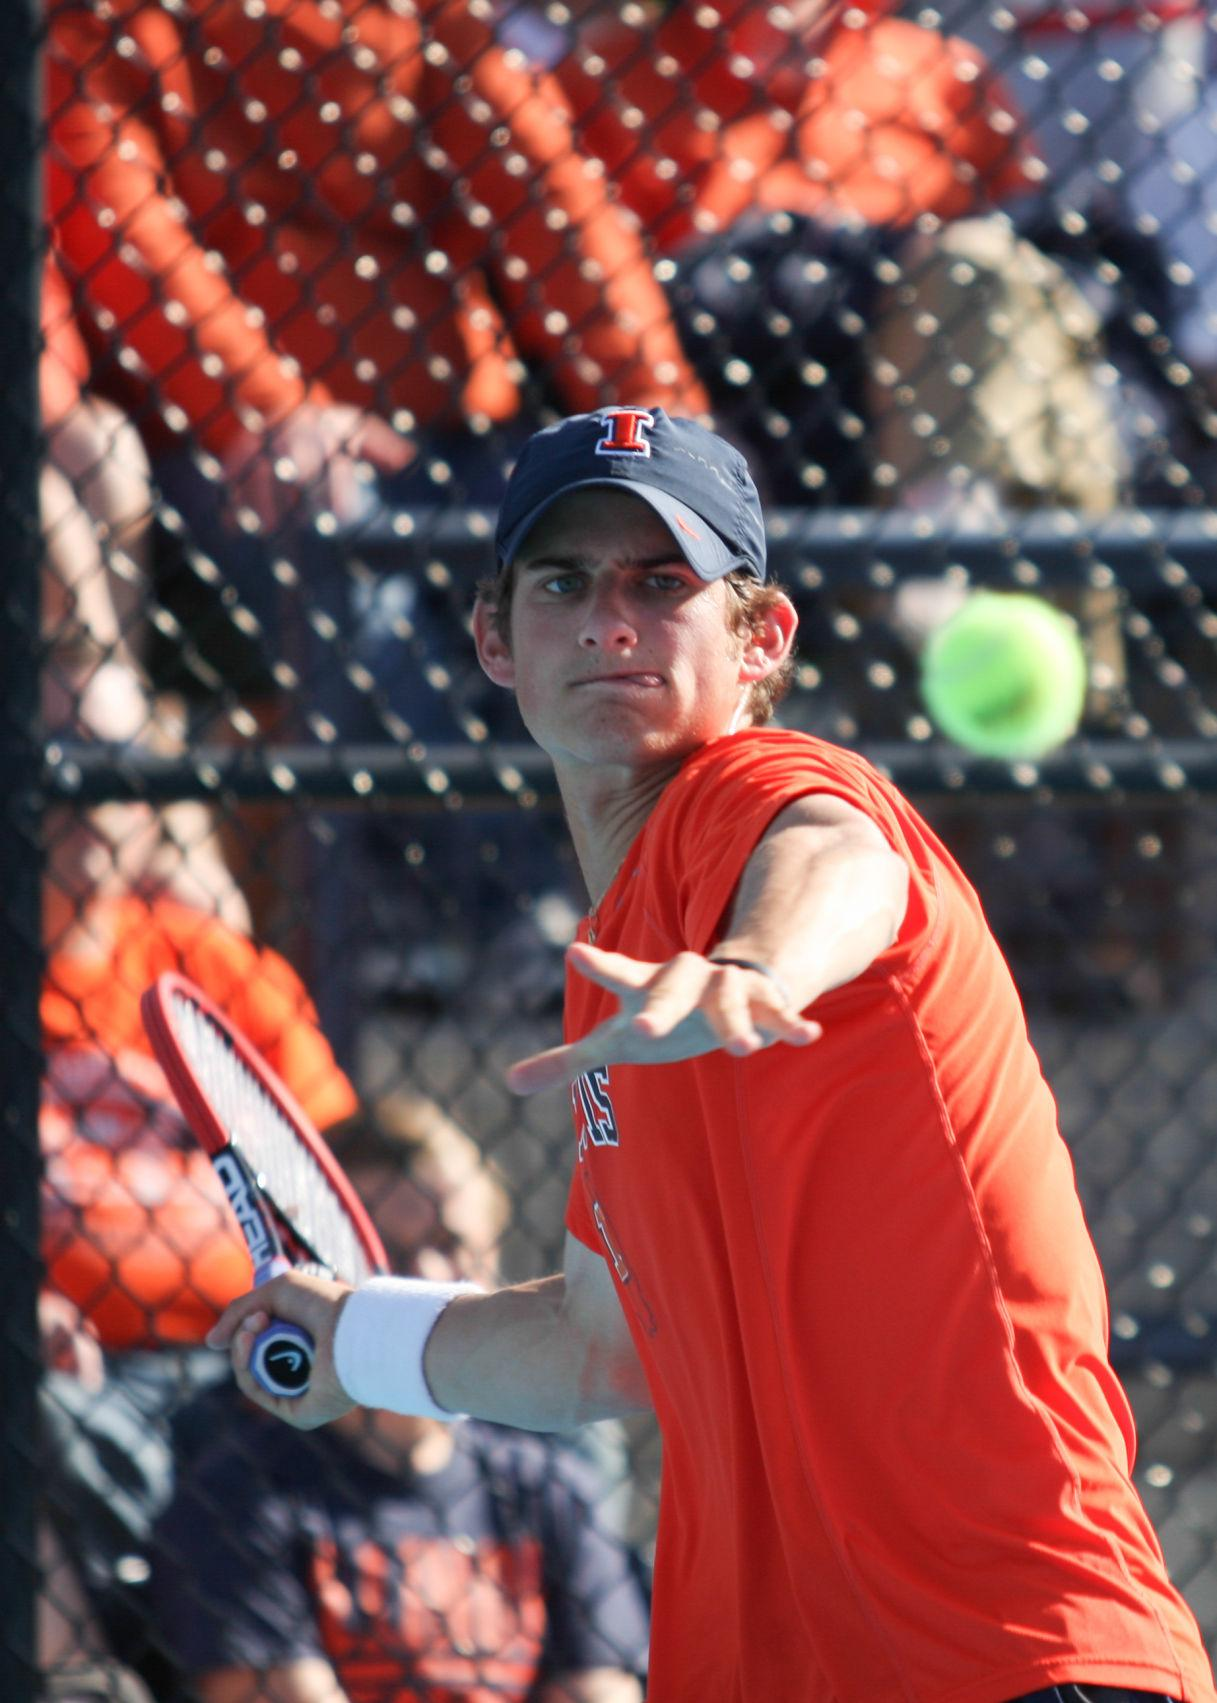 Illinois' Jared Hiltzik hits the ball back during the second round of NCAA Tennis Regionals against the University of Memphis at Khan Outdoor Tennis Complex on May 10.